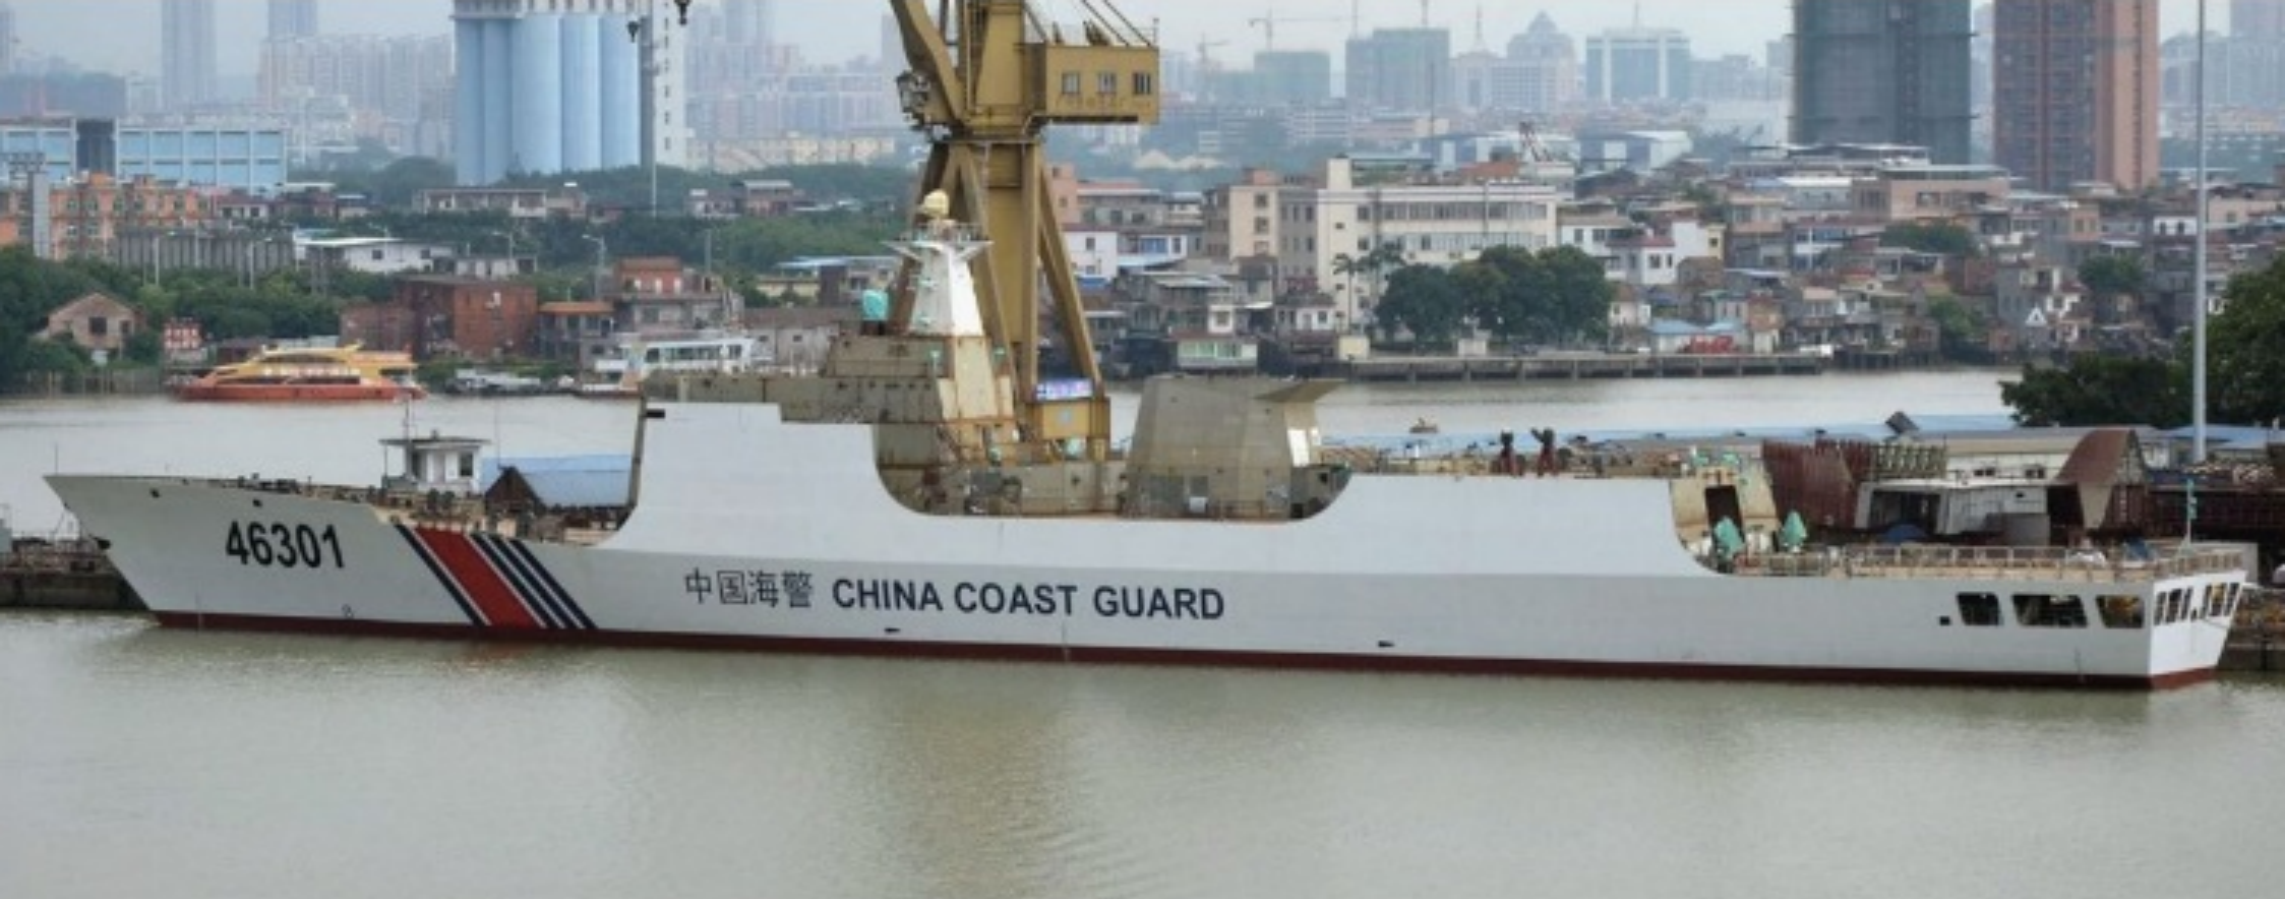 The latest China Coast Guard (CCG) ship